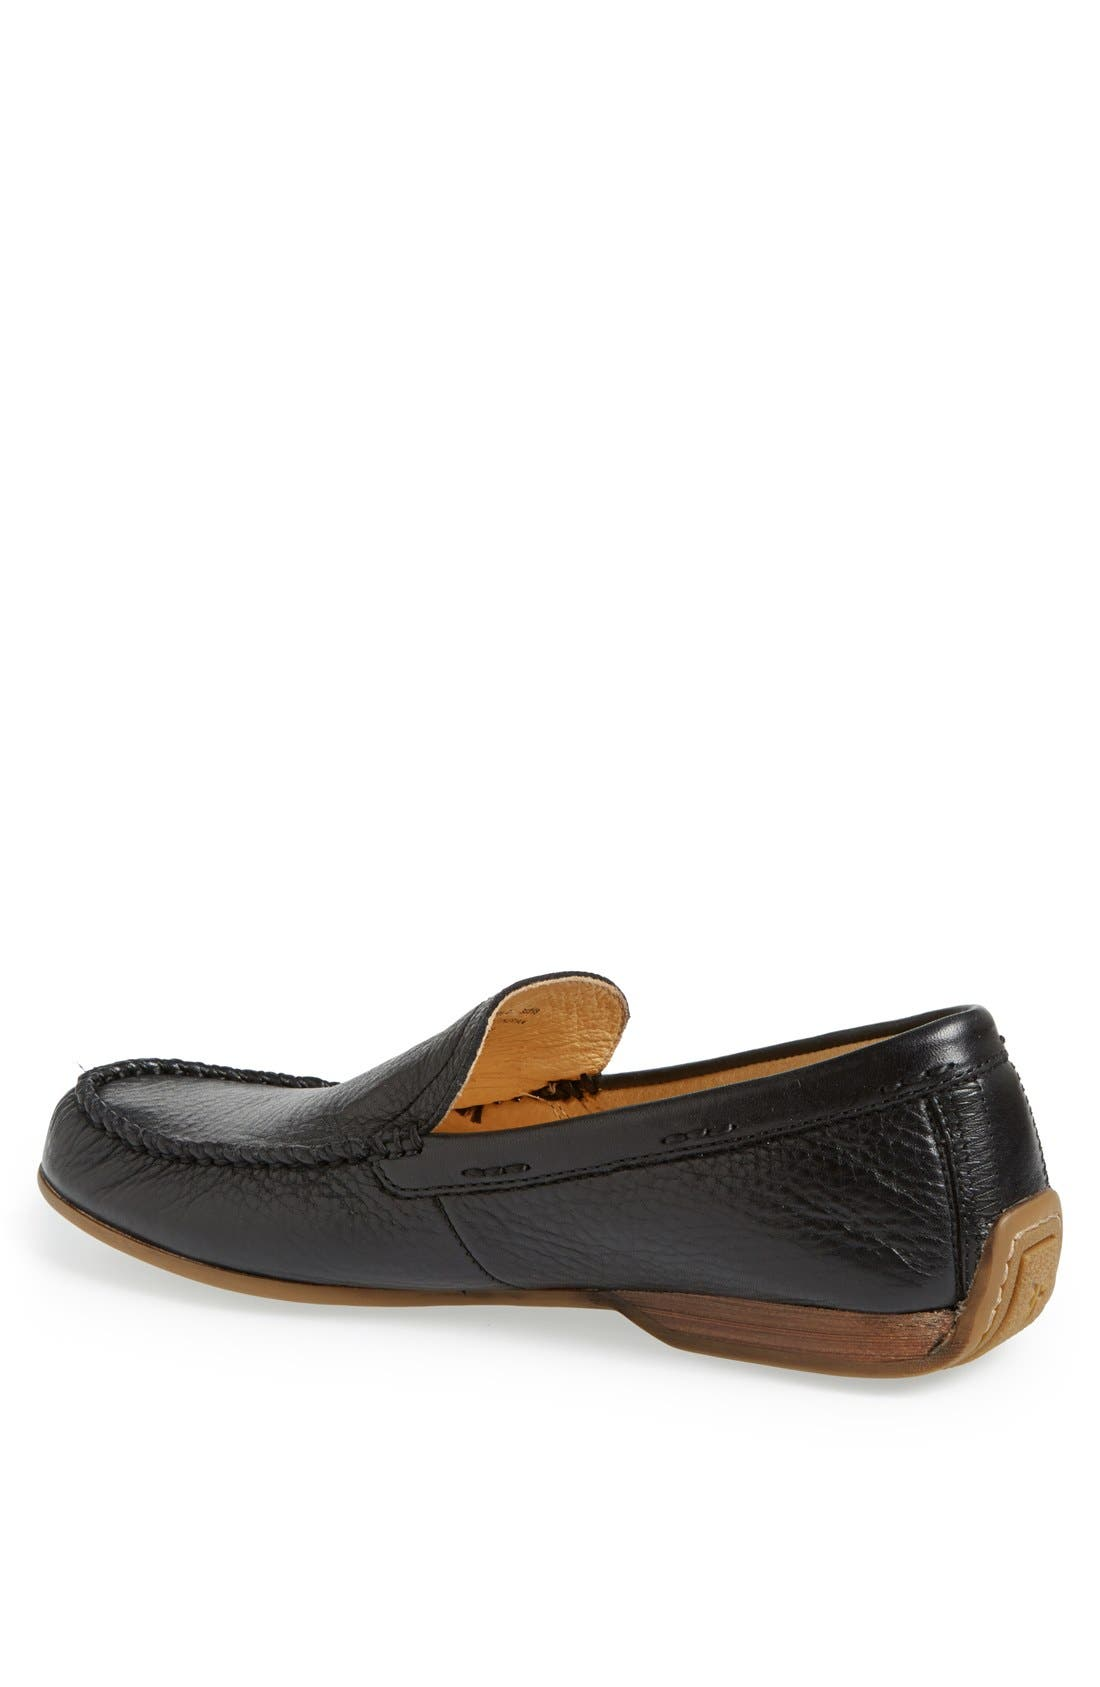 Alternate Image 2  - Frye 'Lewis' Venetian Loafer (Men)